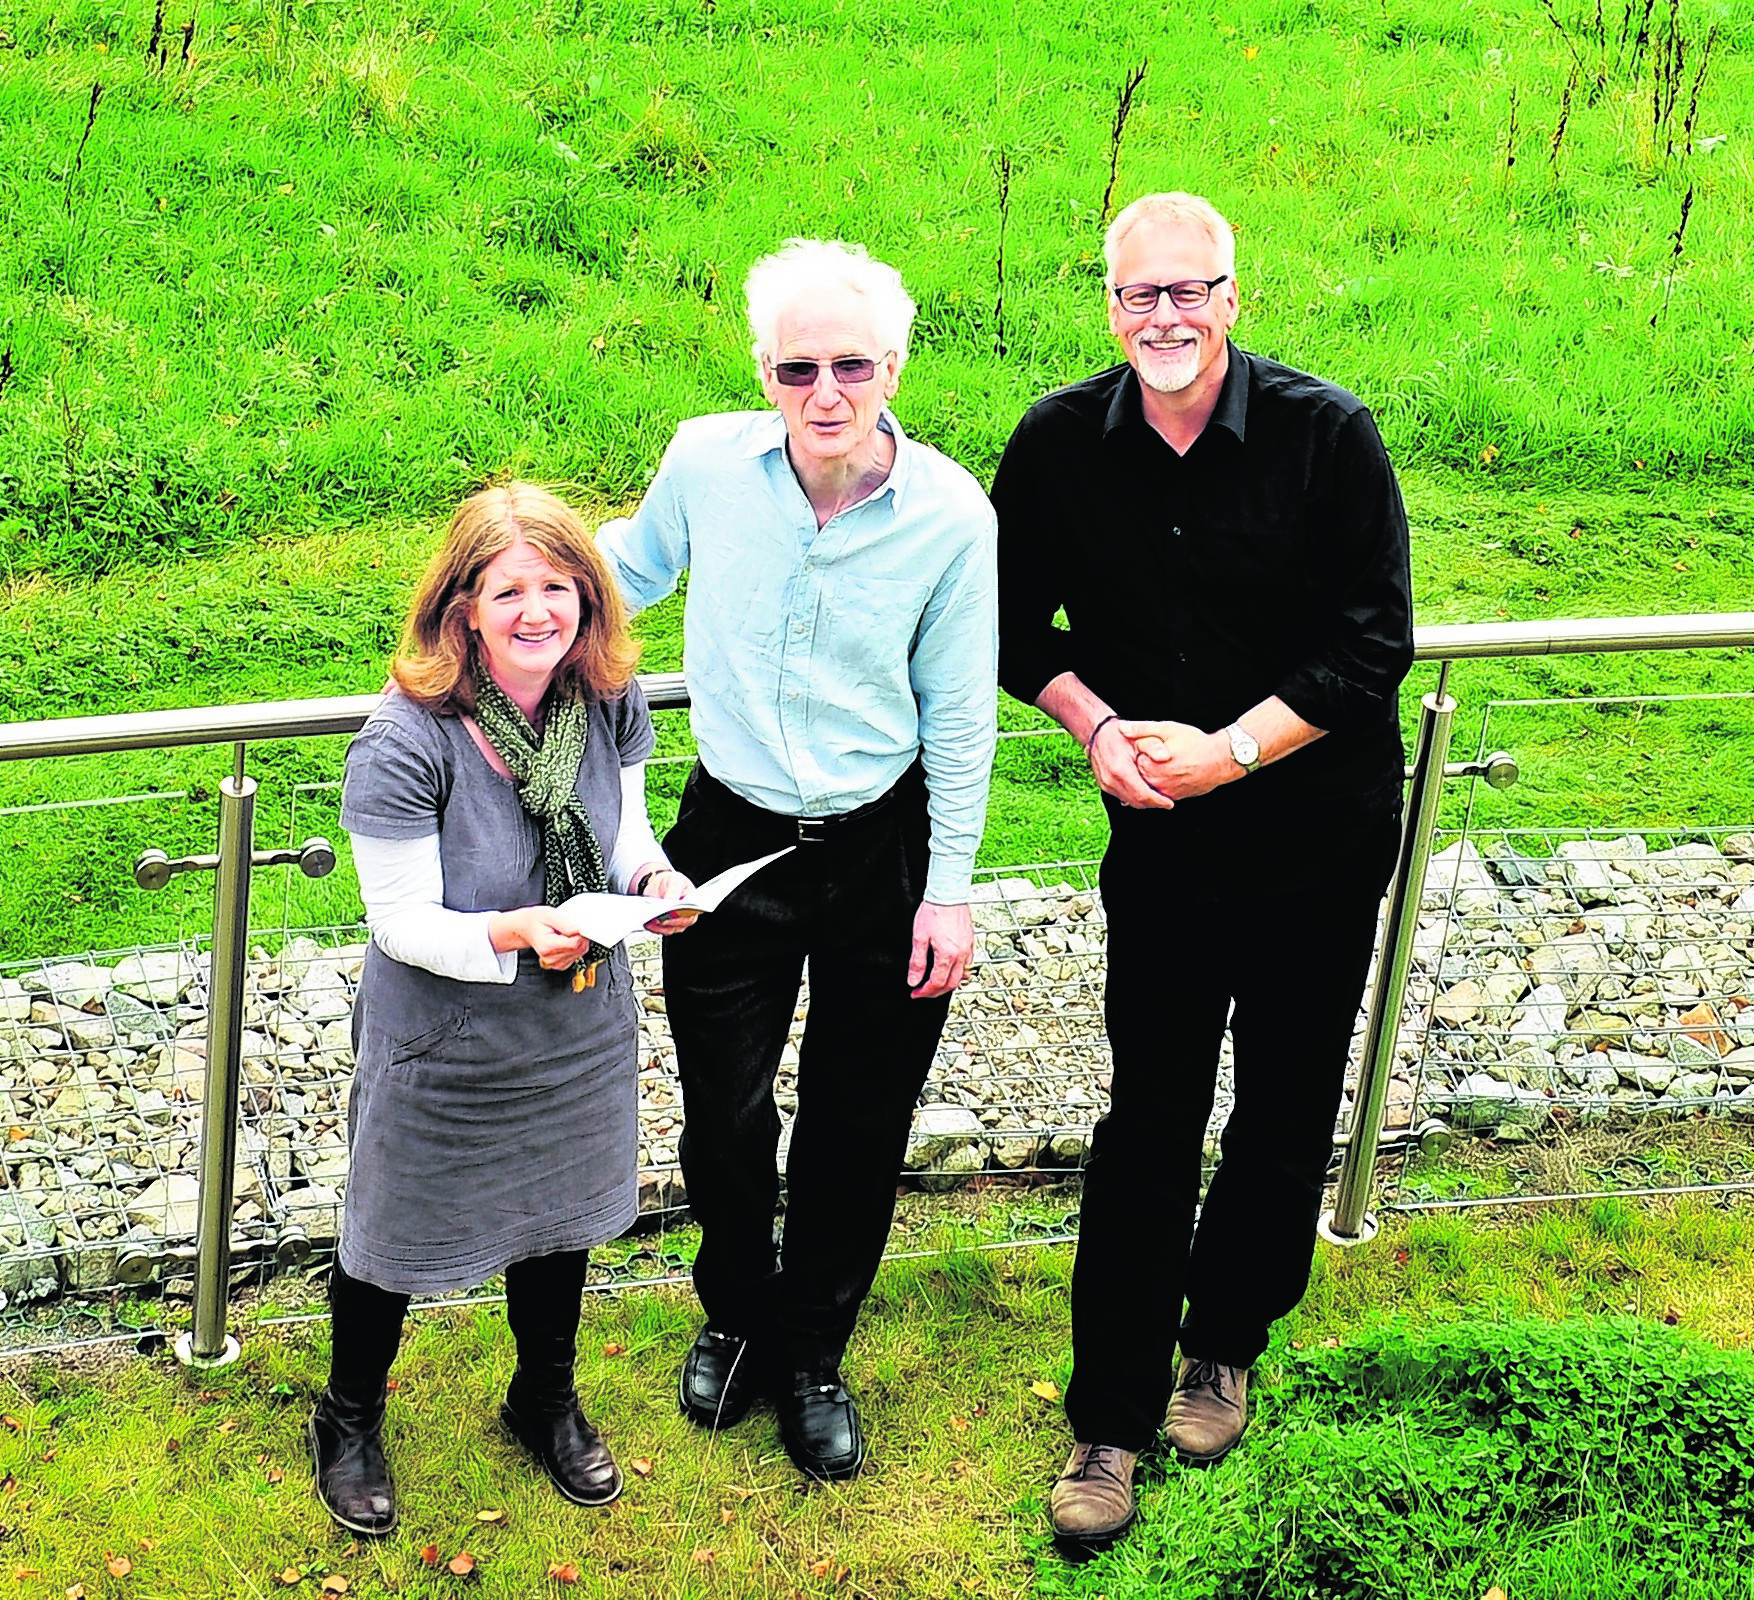 Festival founders Fiona Robertson, Mark Hope and Pete Stollery